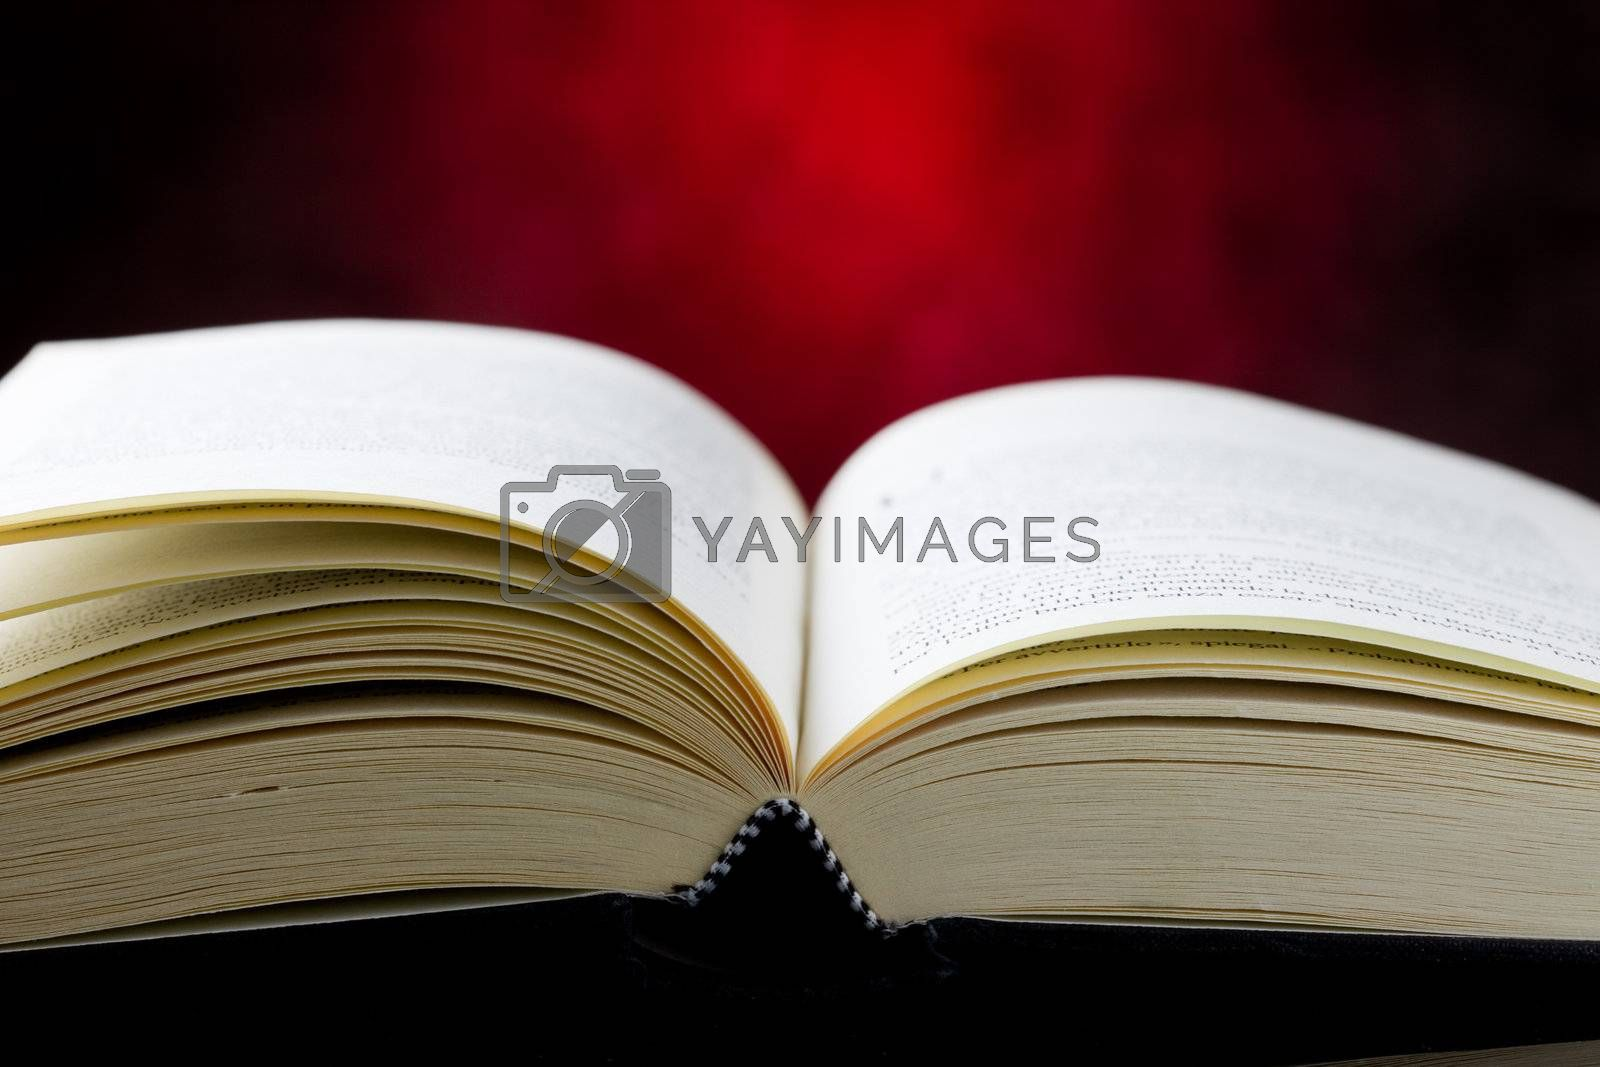 photo of a book which is open in front of a red rural background